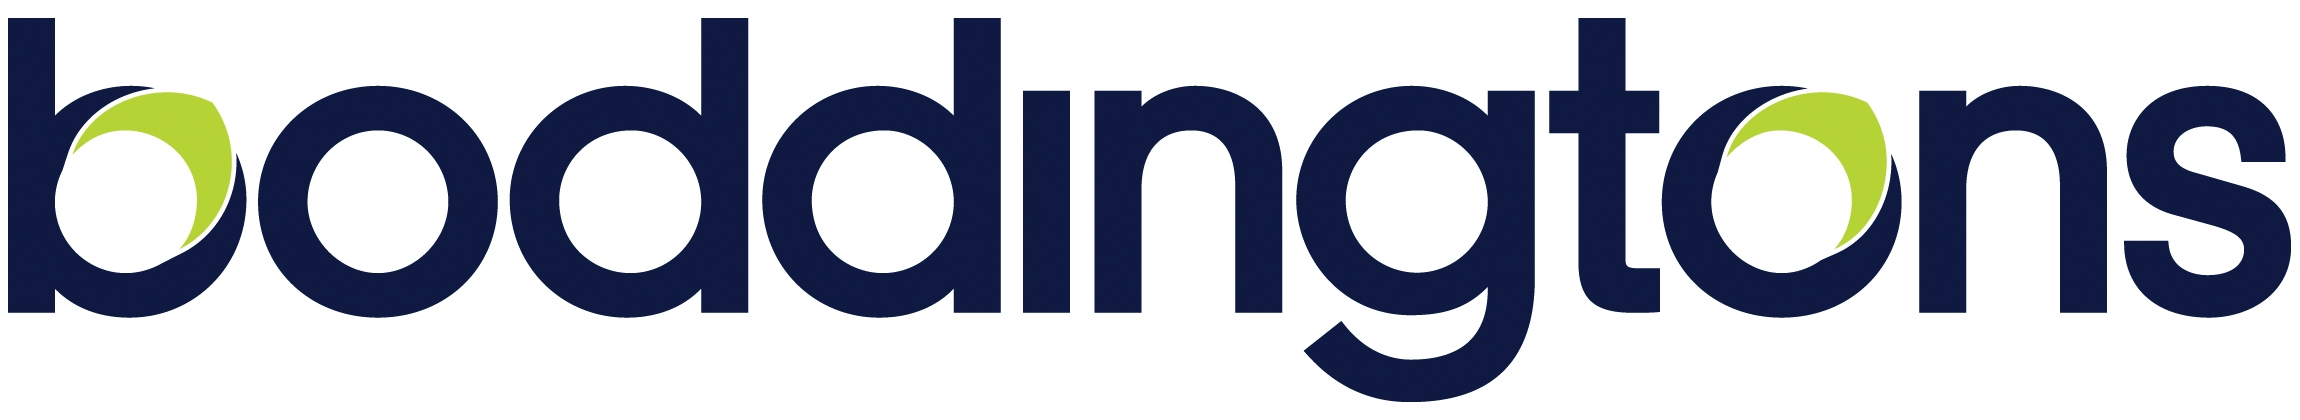 Boddingtons Plastics Ltd